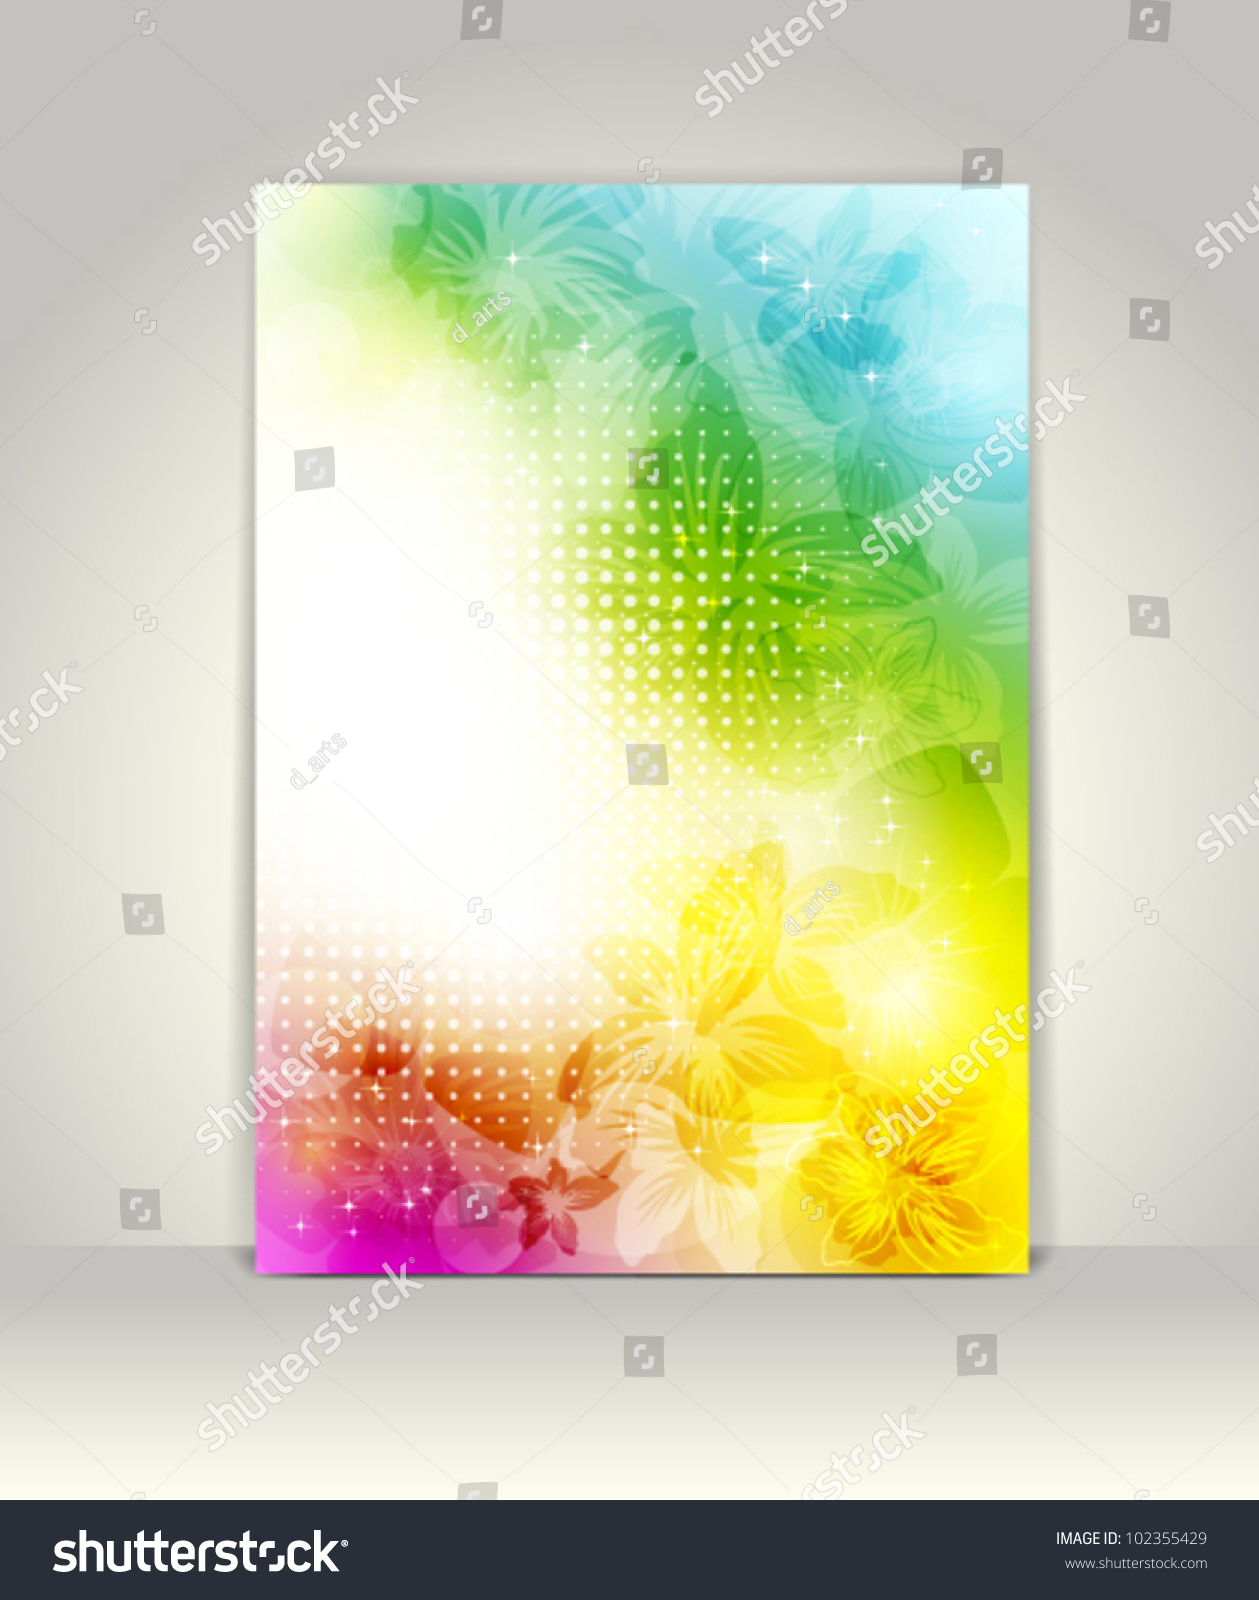 colorful brochure design - business brochure template flower colorful design stock